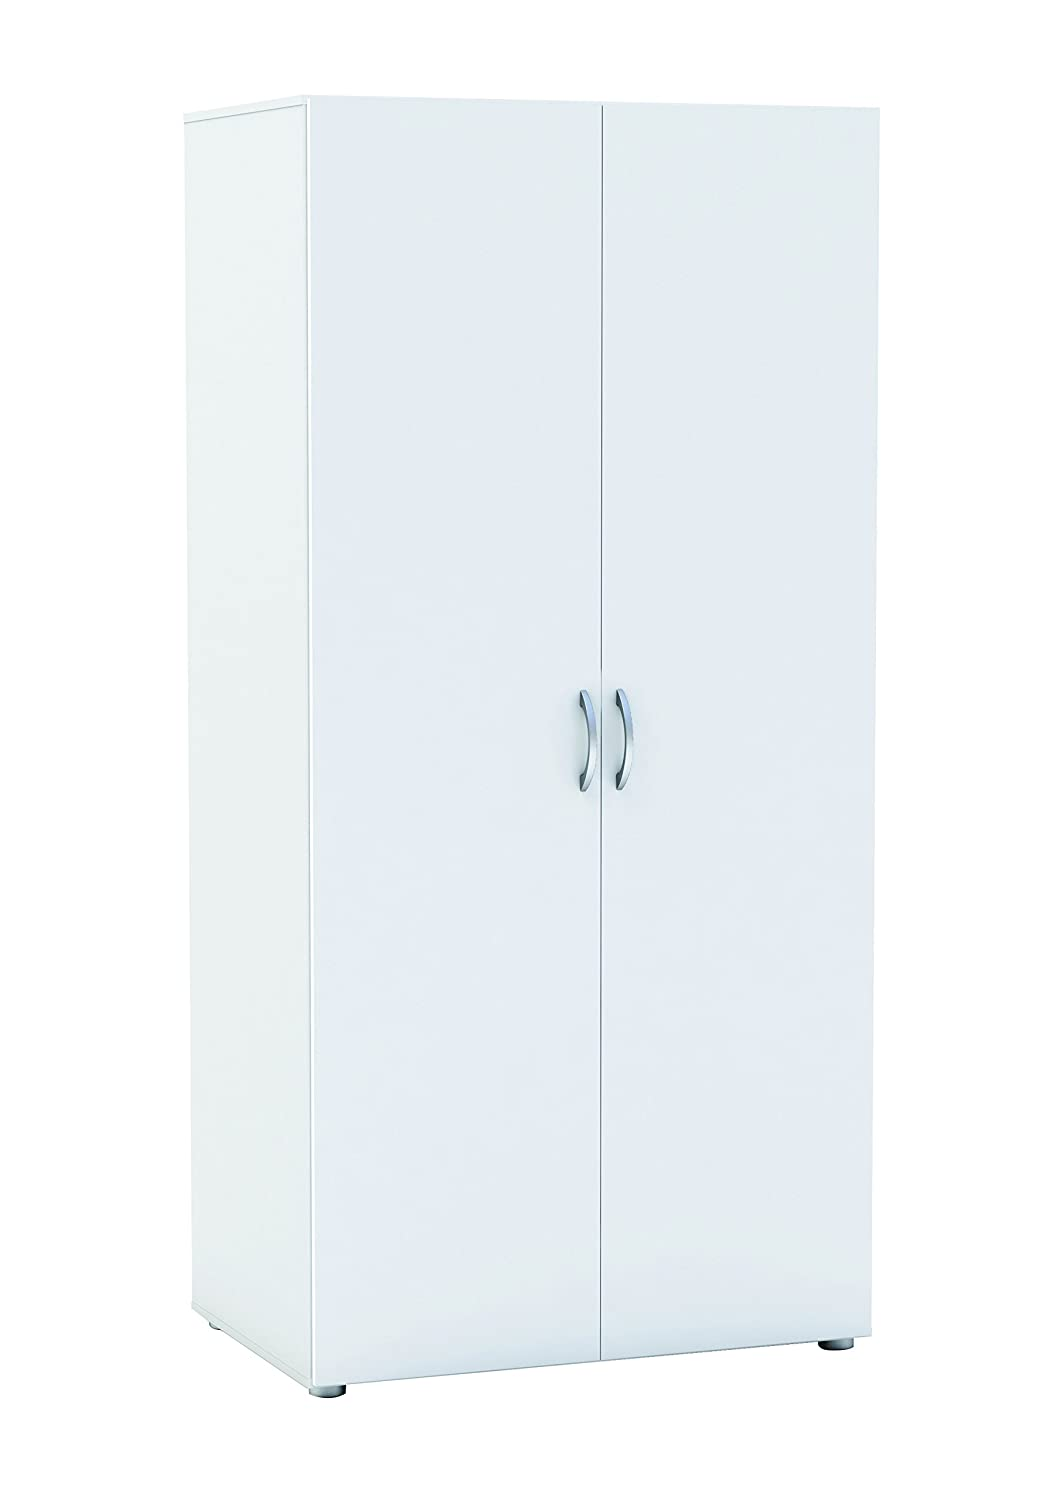 Zip2 2-Door Wardrobe with Hanging Rail and Shelf, Chip Board, Pearl White, 80.4 x 51.5 x 166.6 cm Meubles Demeyère 475057 F00361501102_WHITE